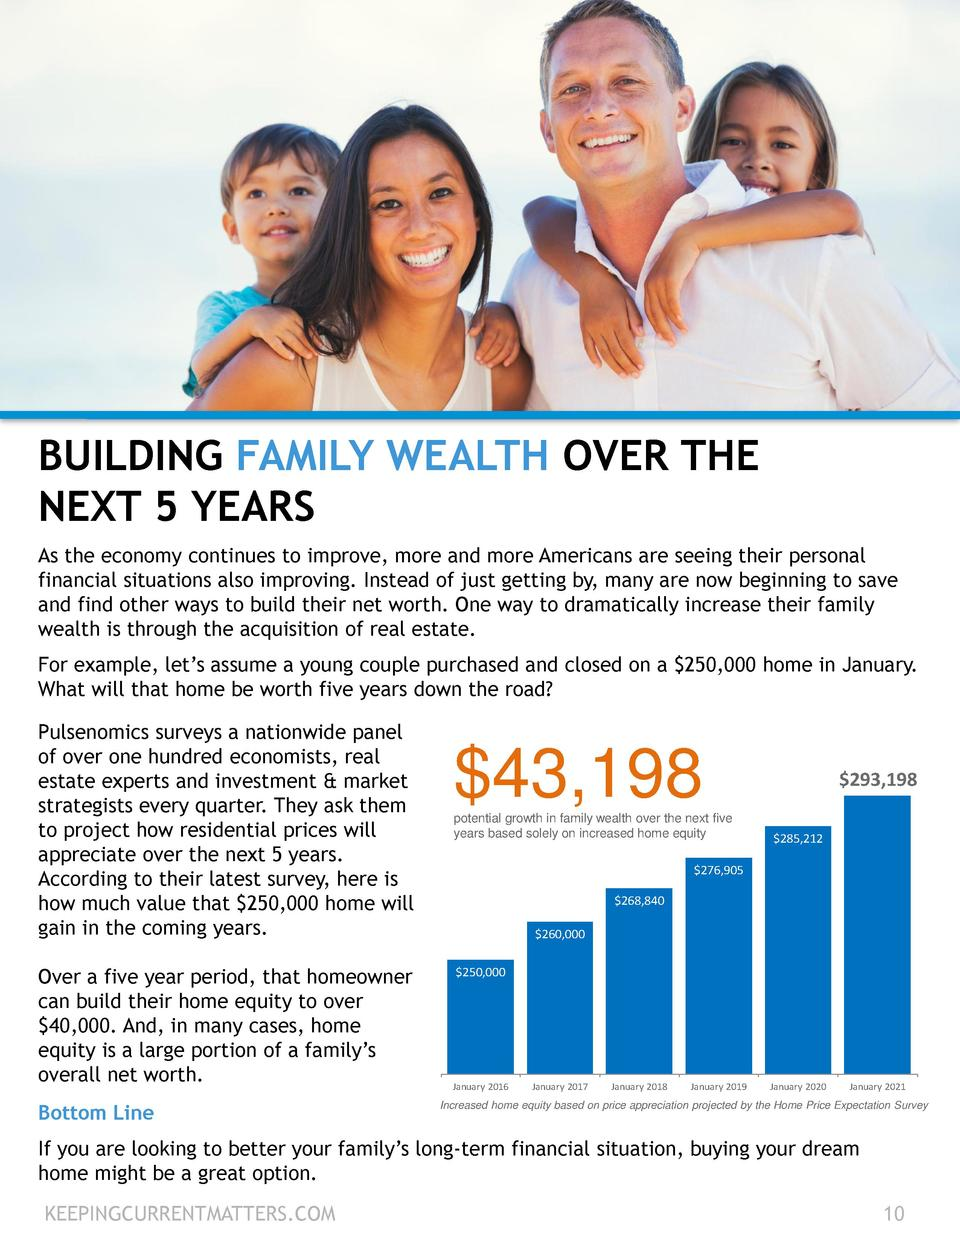 BUILDING FAMILY WEALTH OVER THE NEXT 5 YEARS As the economy continues to improve, more and more Americans are seeing their...